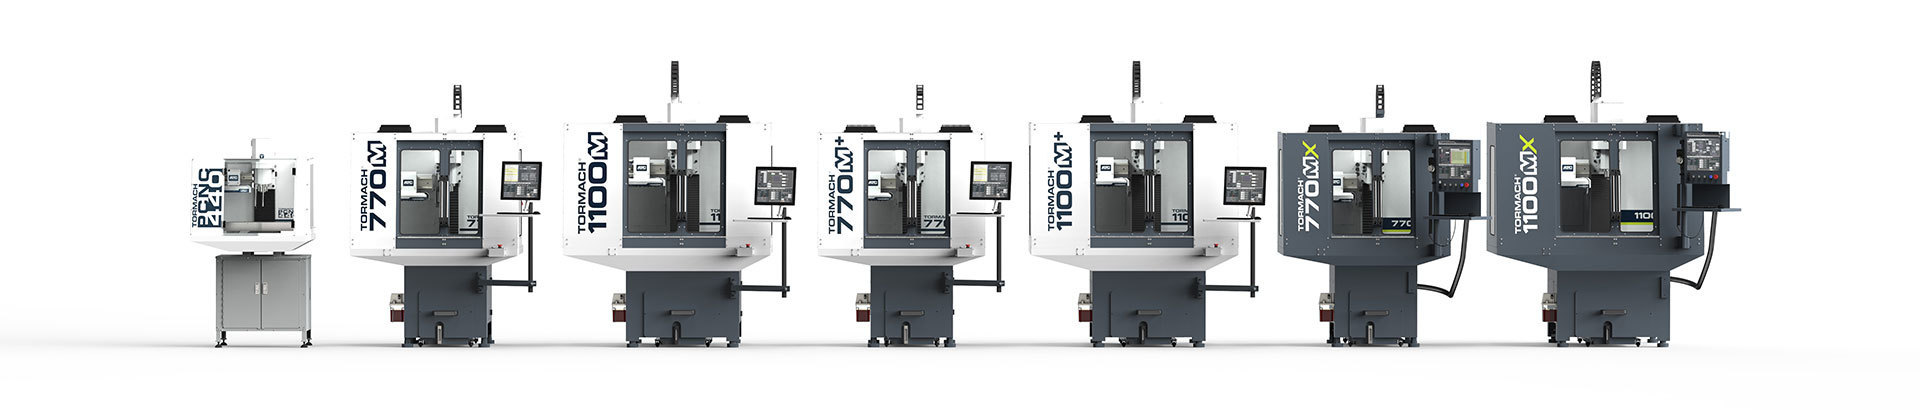 Tormach CNC Milling Machine Lineup